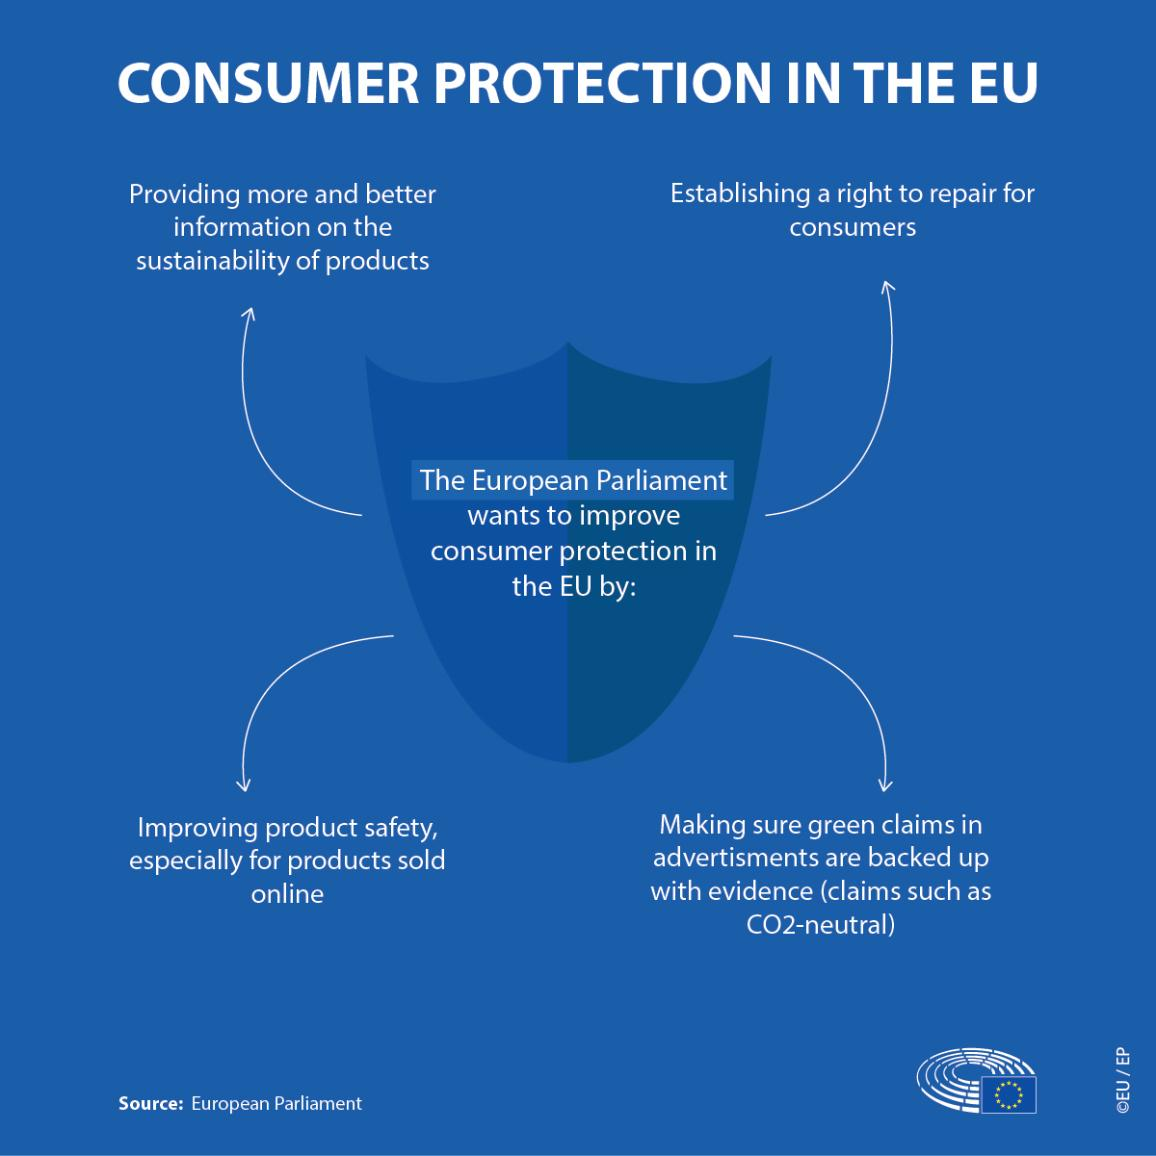 Infographic illustration on consumer protection in the European Union